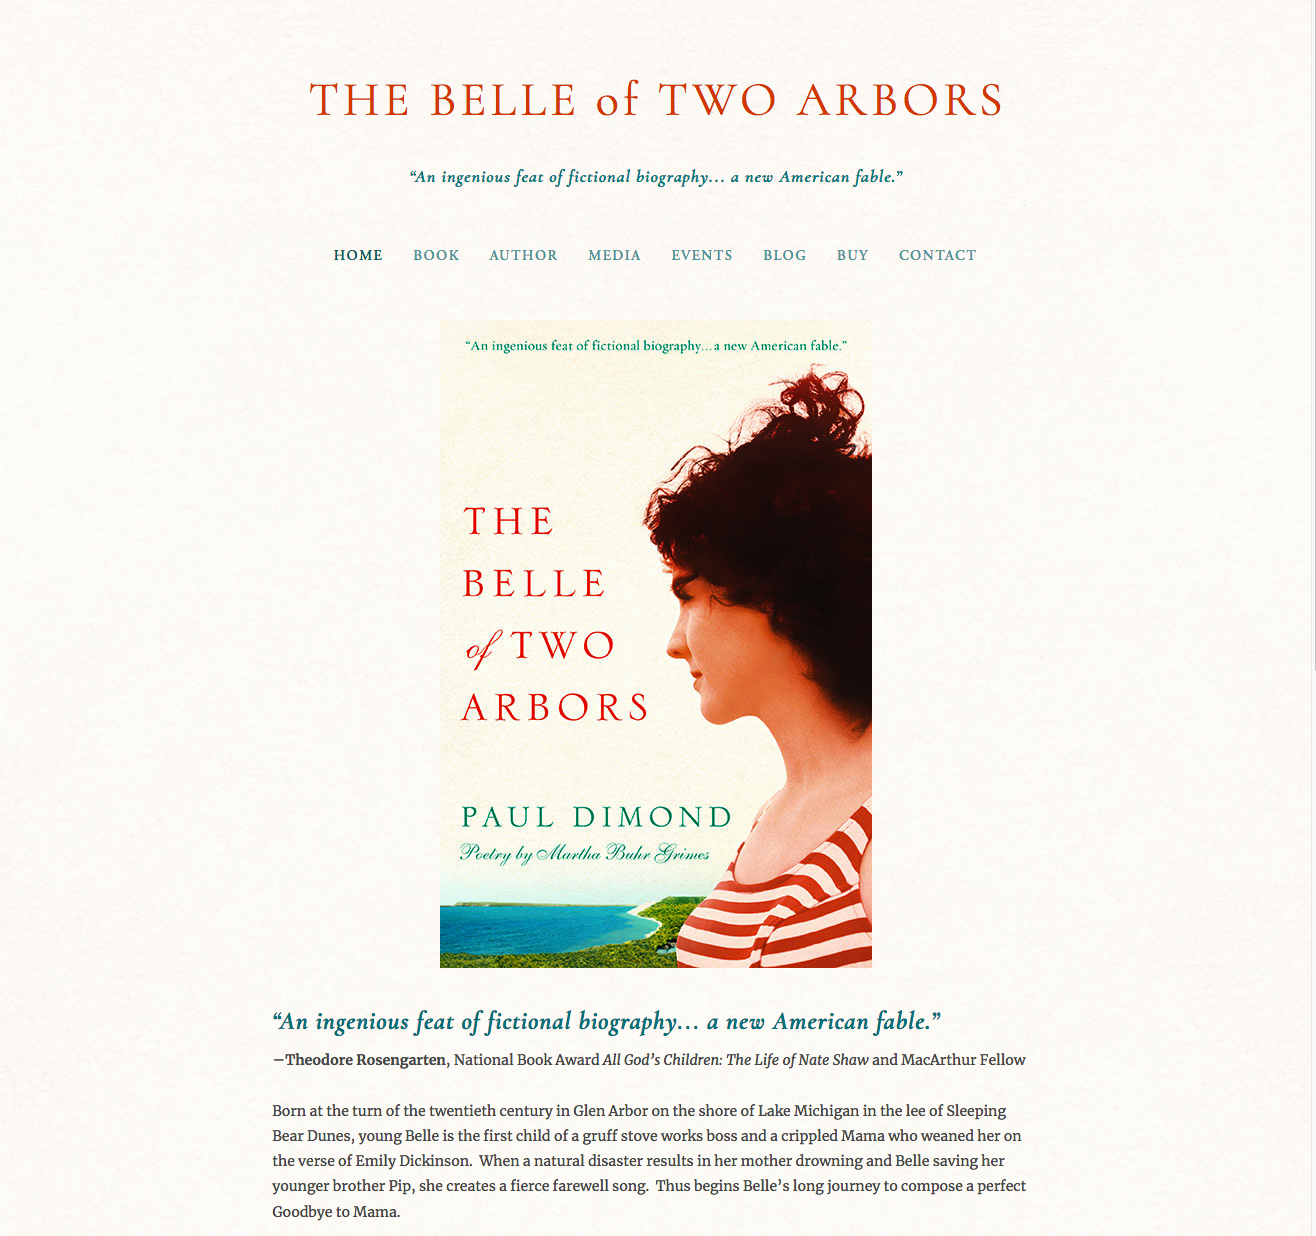 Website for The Belle of Two Arbors by Paul Dimond, poetry by Martha Buhr Grimes